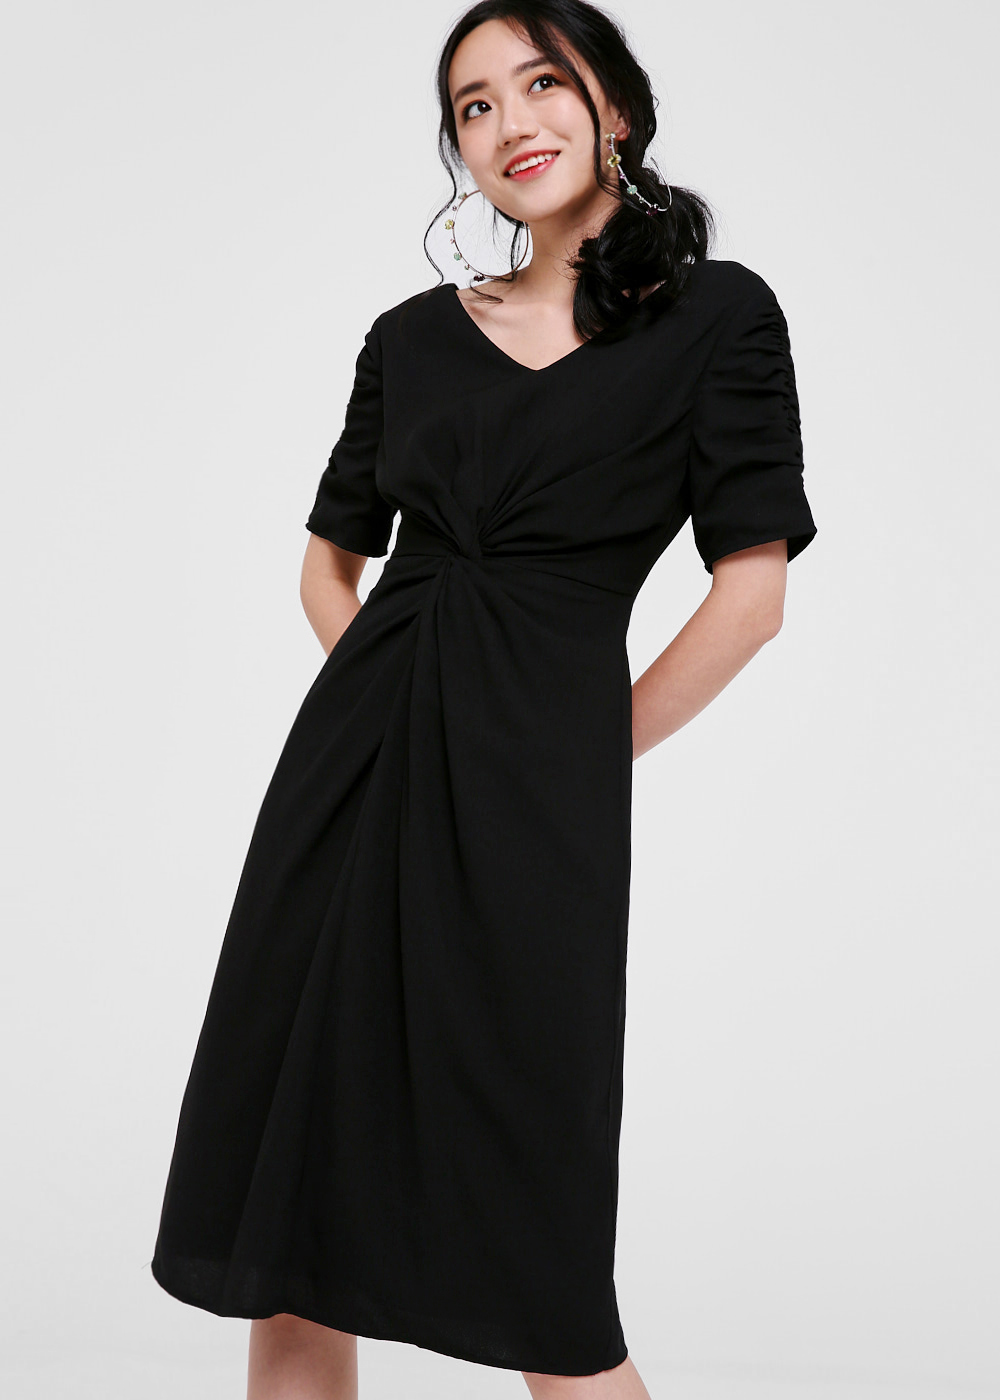 Sinclair Twist-front Midi Dress